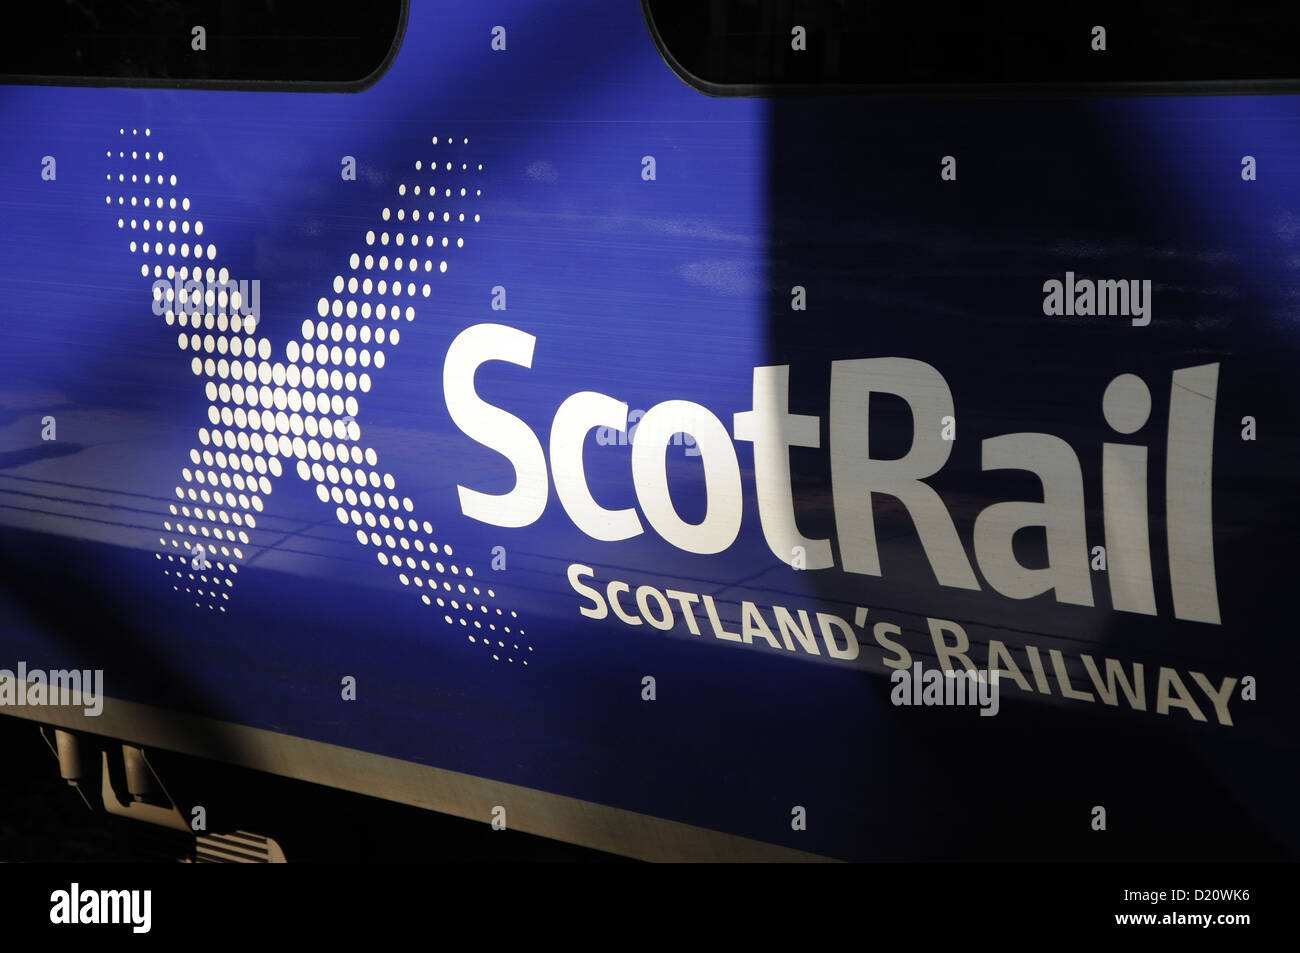 Scotrail logo on carraige, Waverley station, Edinburgh, Scotland, Uk - Stock Image